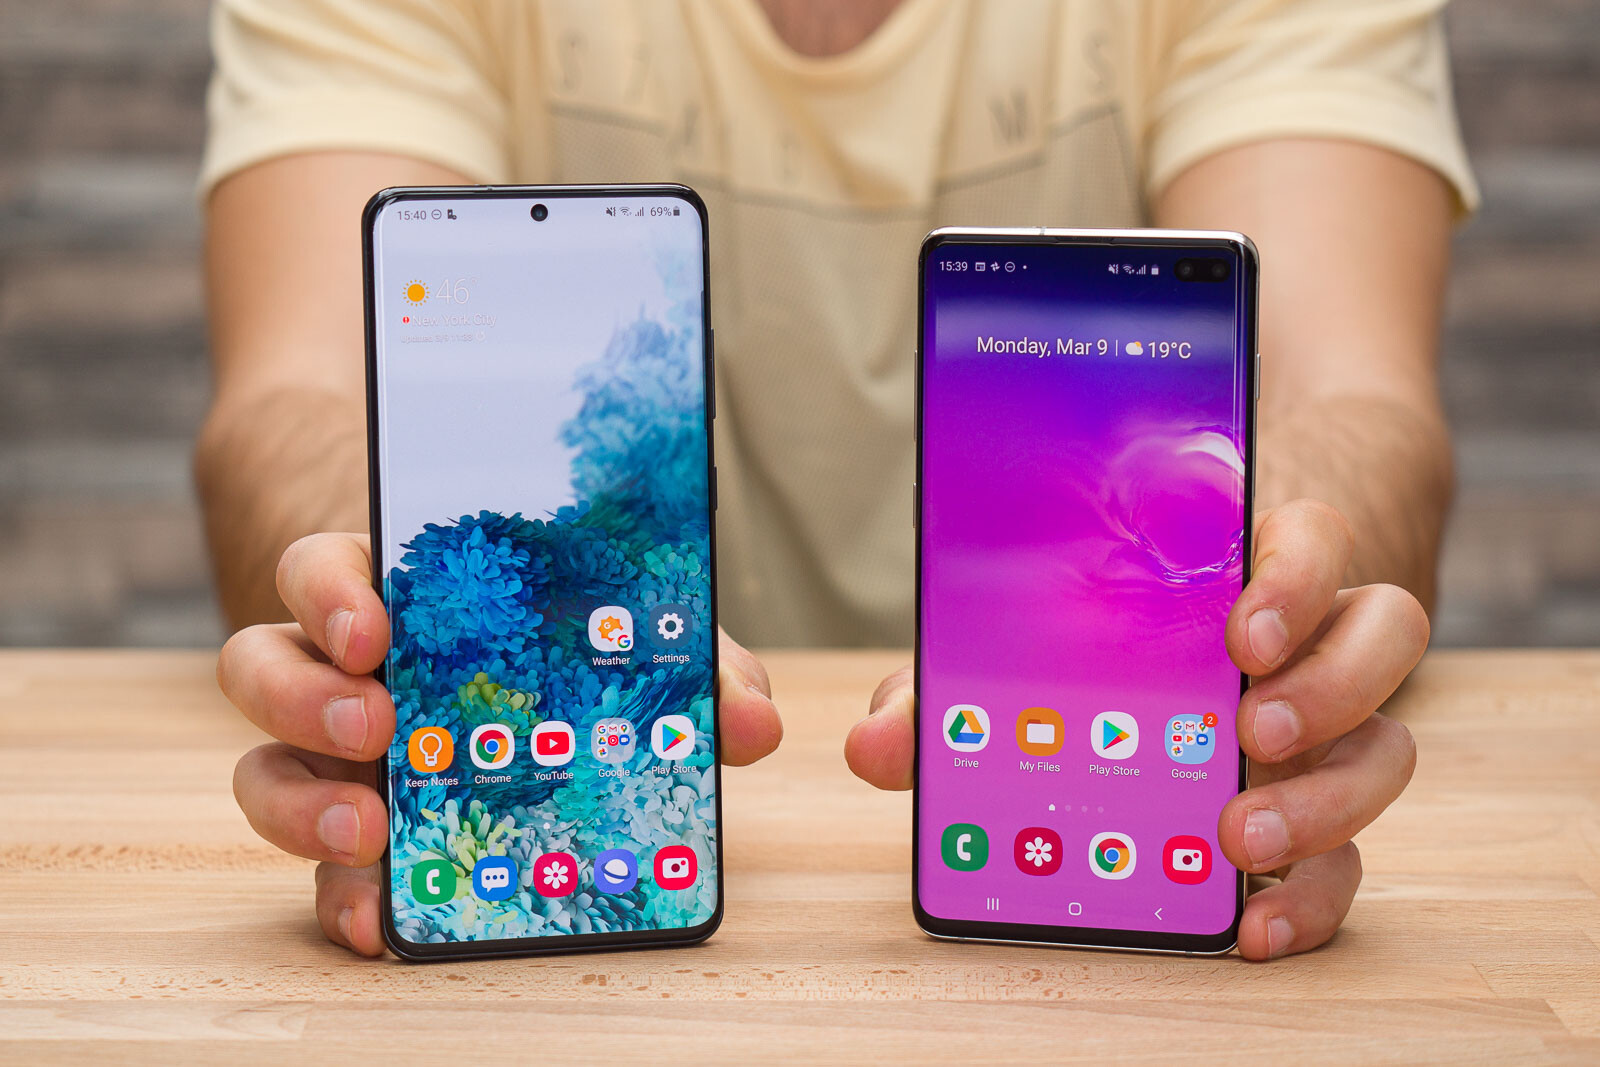 Samsung Galaxy S20 Ultra vs Galaxy S10 Plus